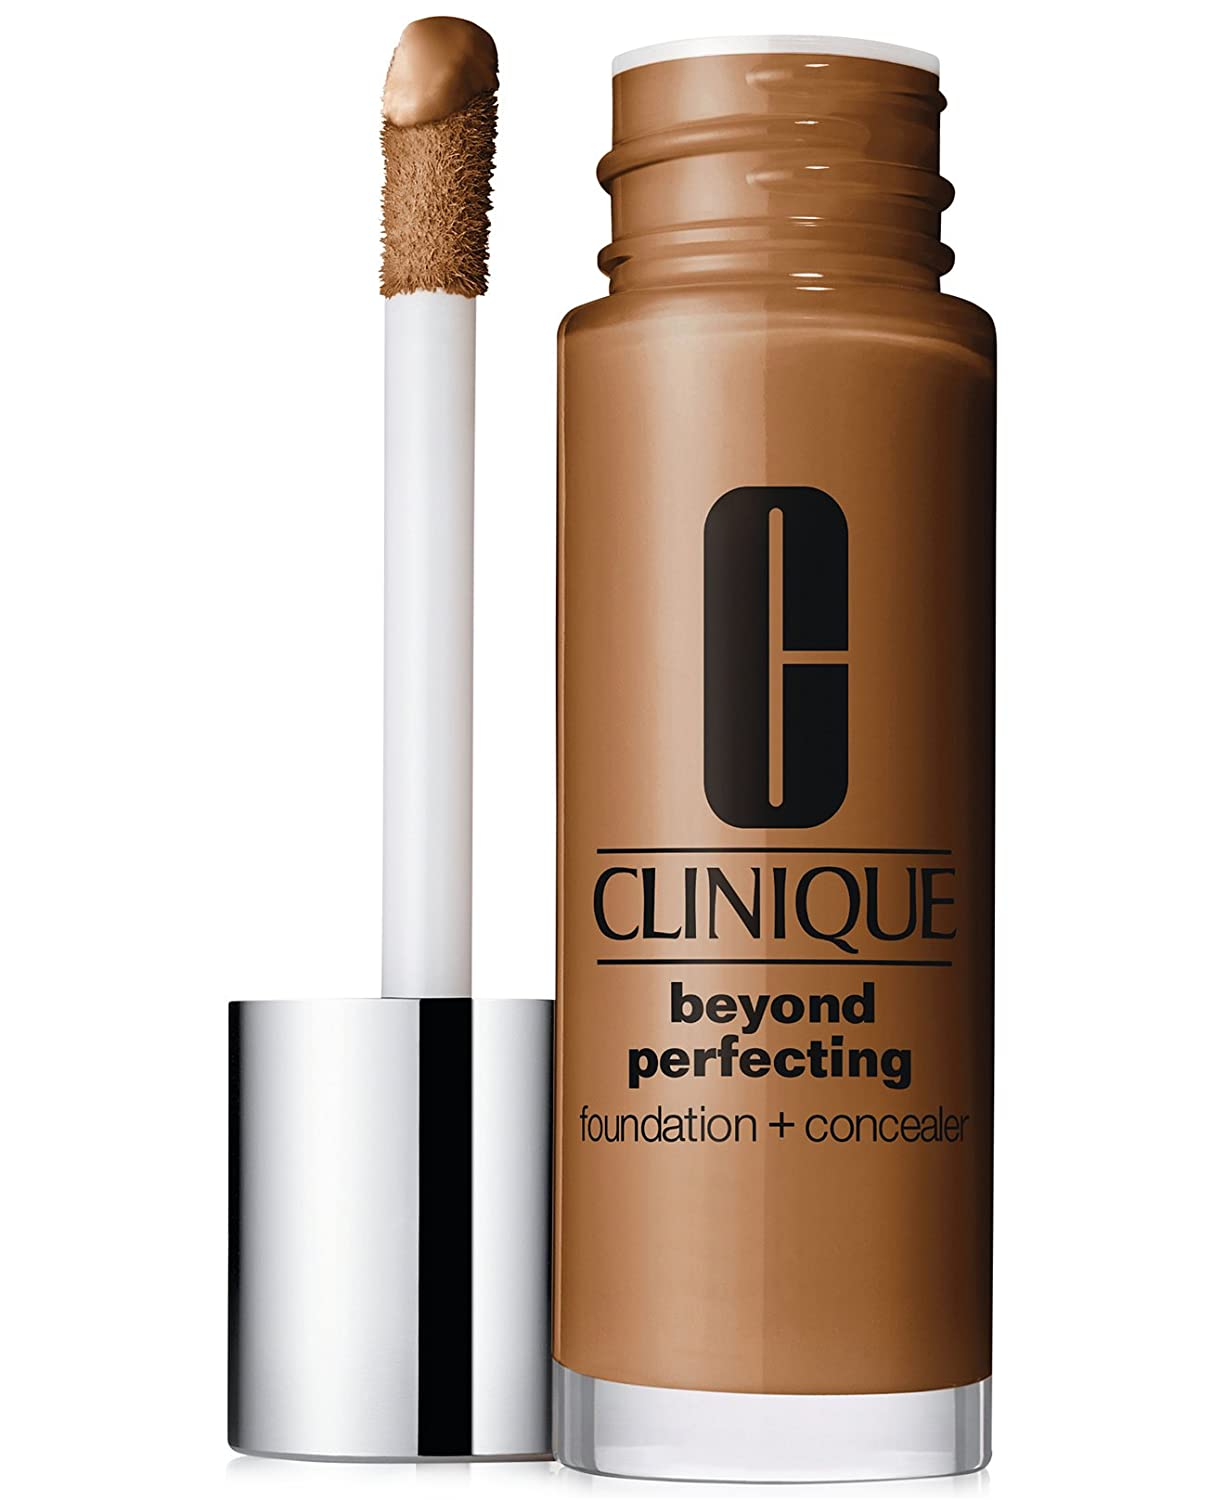 New! Clinique Beyond Perfecting Foundation + Concealer, 1 oz / 30 ml, 26 Amber (D-G)